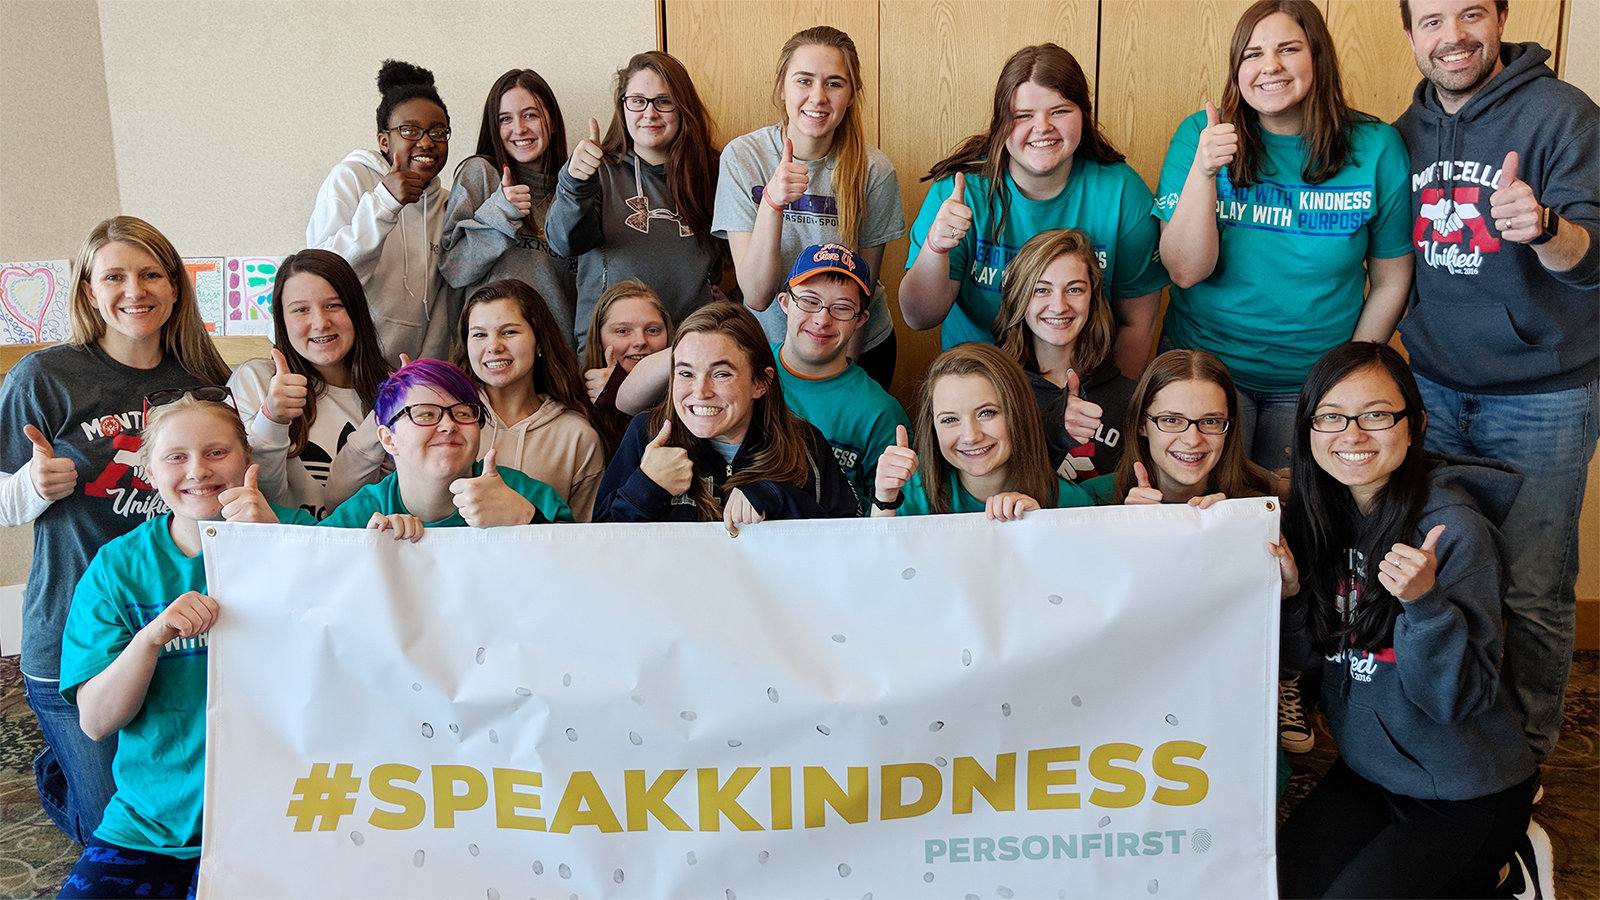 A group of Unified students smile and give the camera a thumbs-up while holding a #SpeakKindness Person First banner